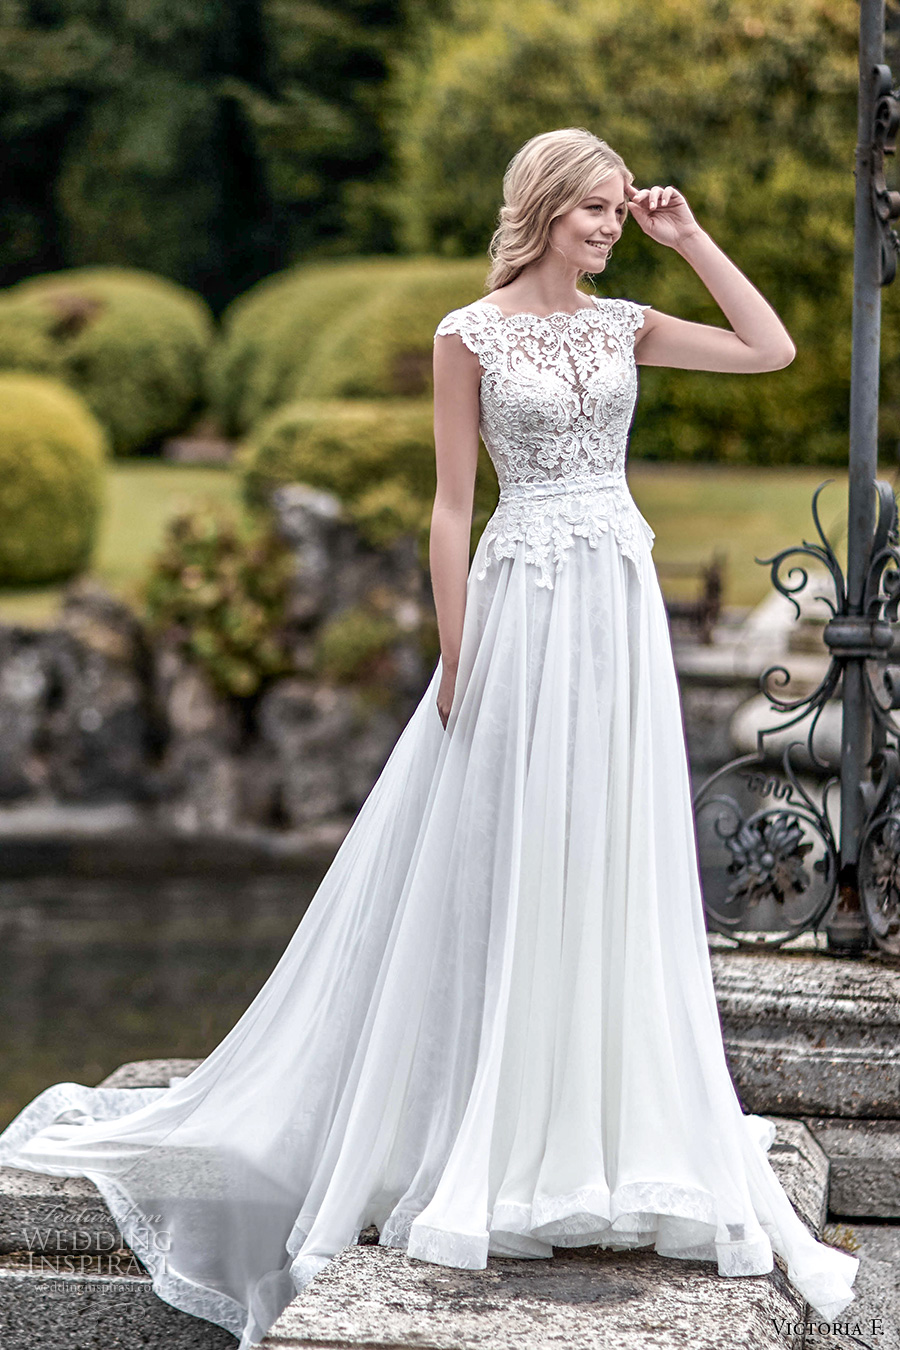 victoria f 2017 bridal cap sleeves scallop lace bateau neckline heavily embellished bodice beautiful elegant a line wedding dress chapel train (untitled 02) mv